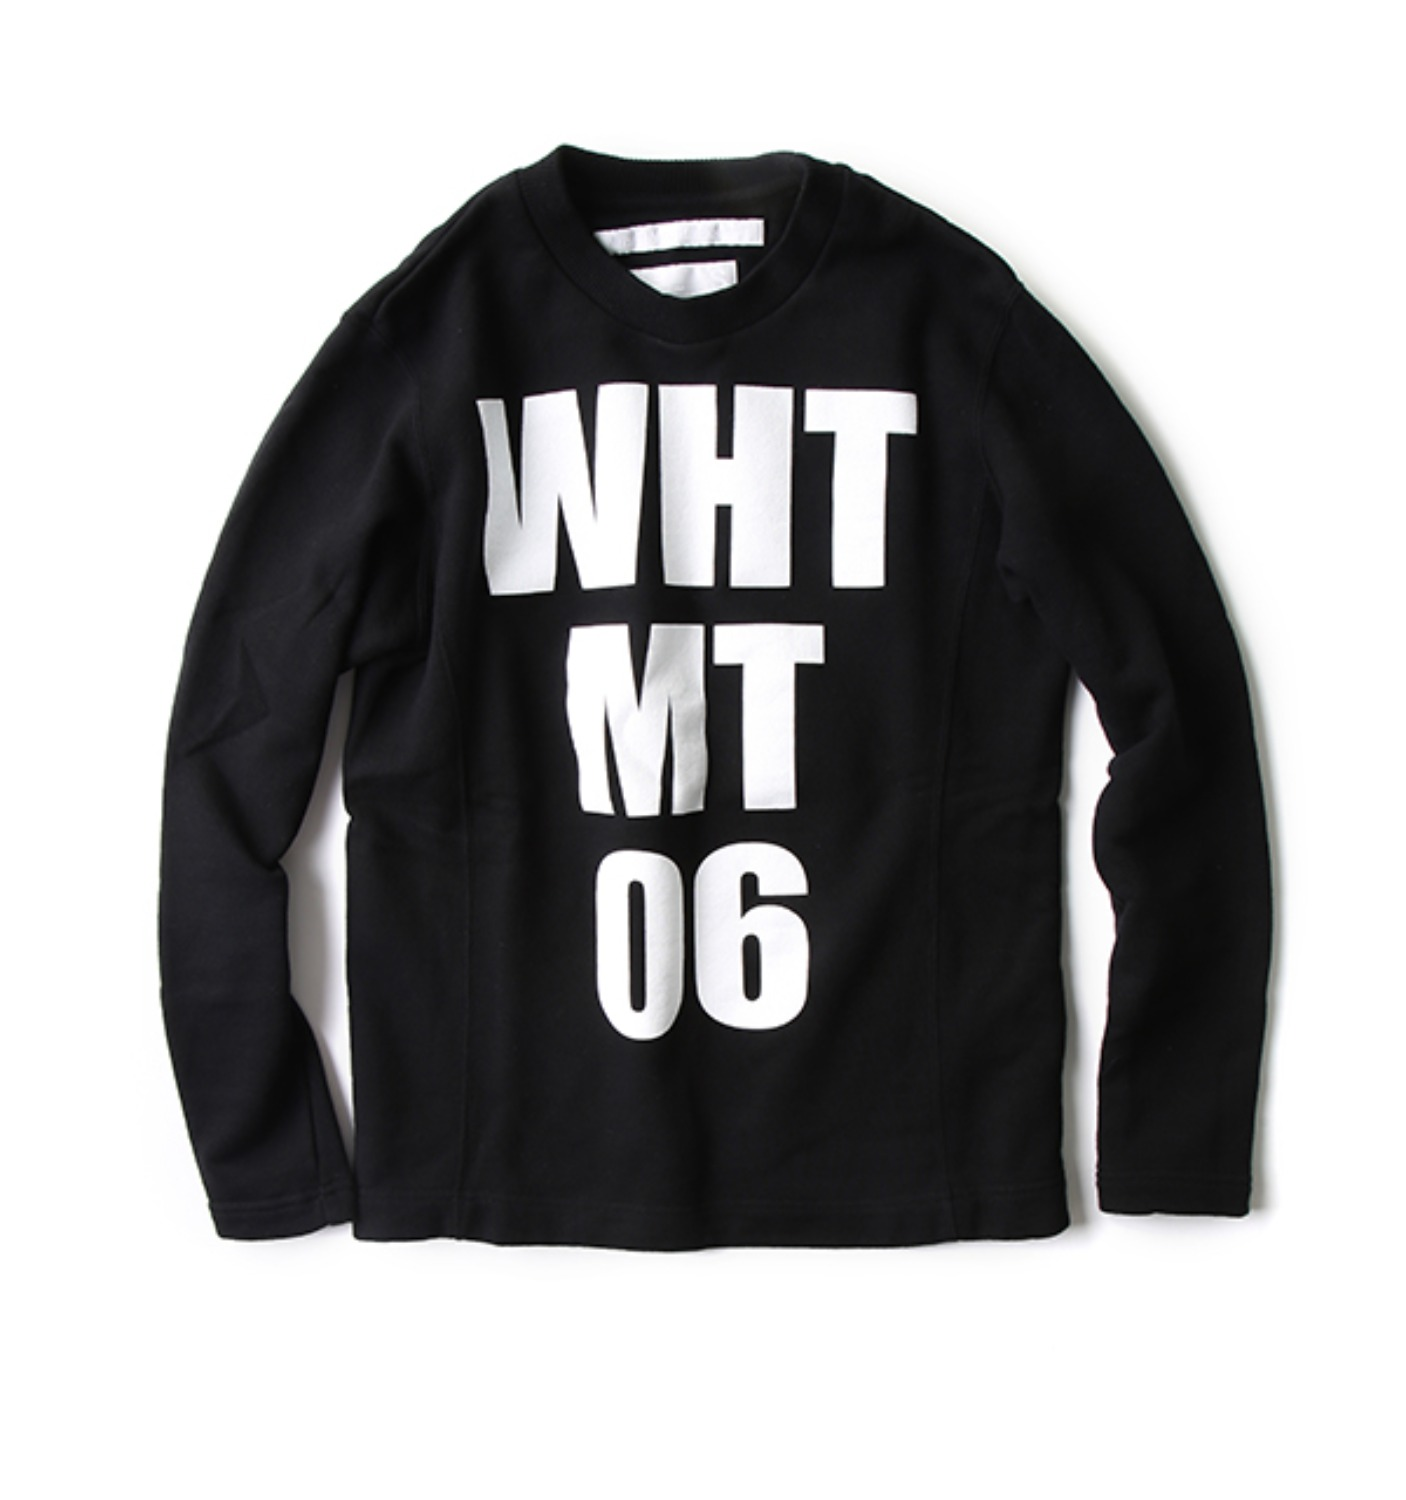 FLEECE LINING CONTRASTEDPRINTED LOGO SWEATSHIRT BLACK (WL1673514)